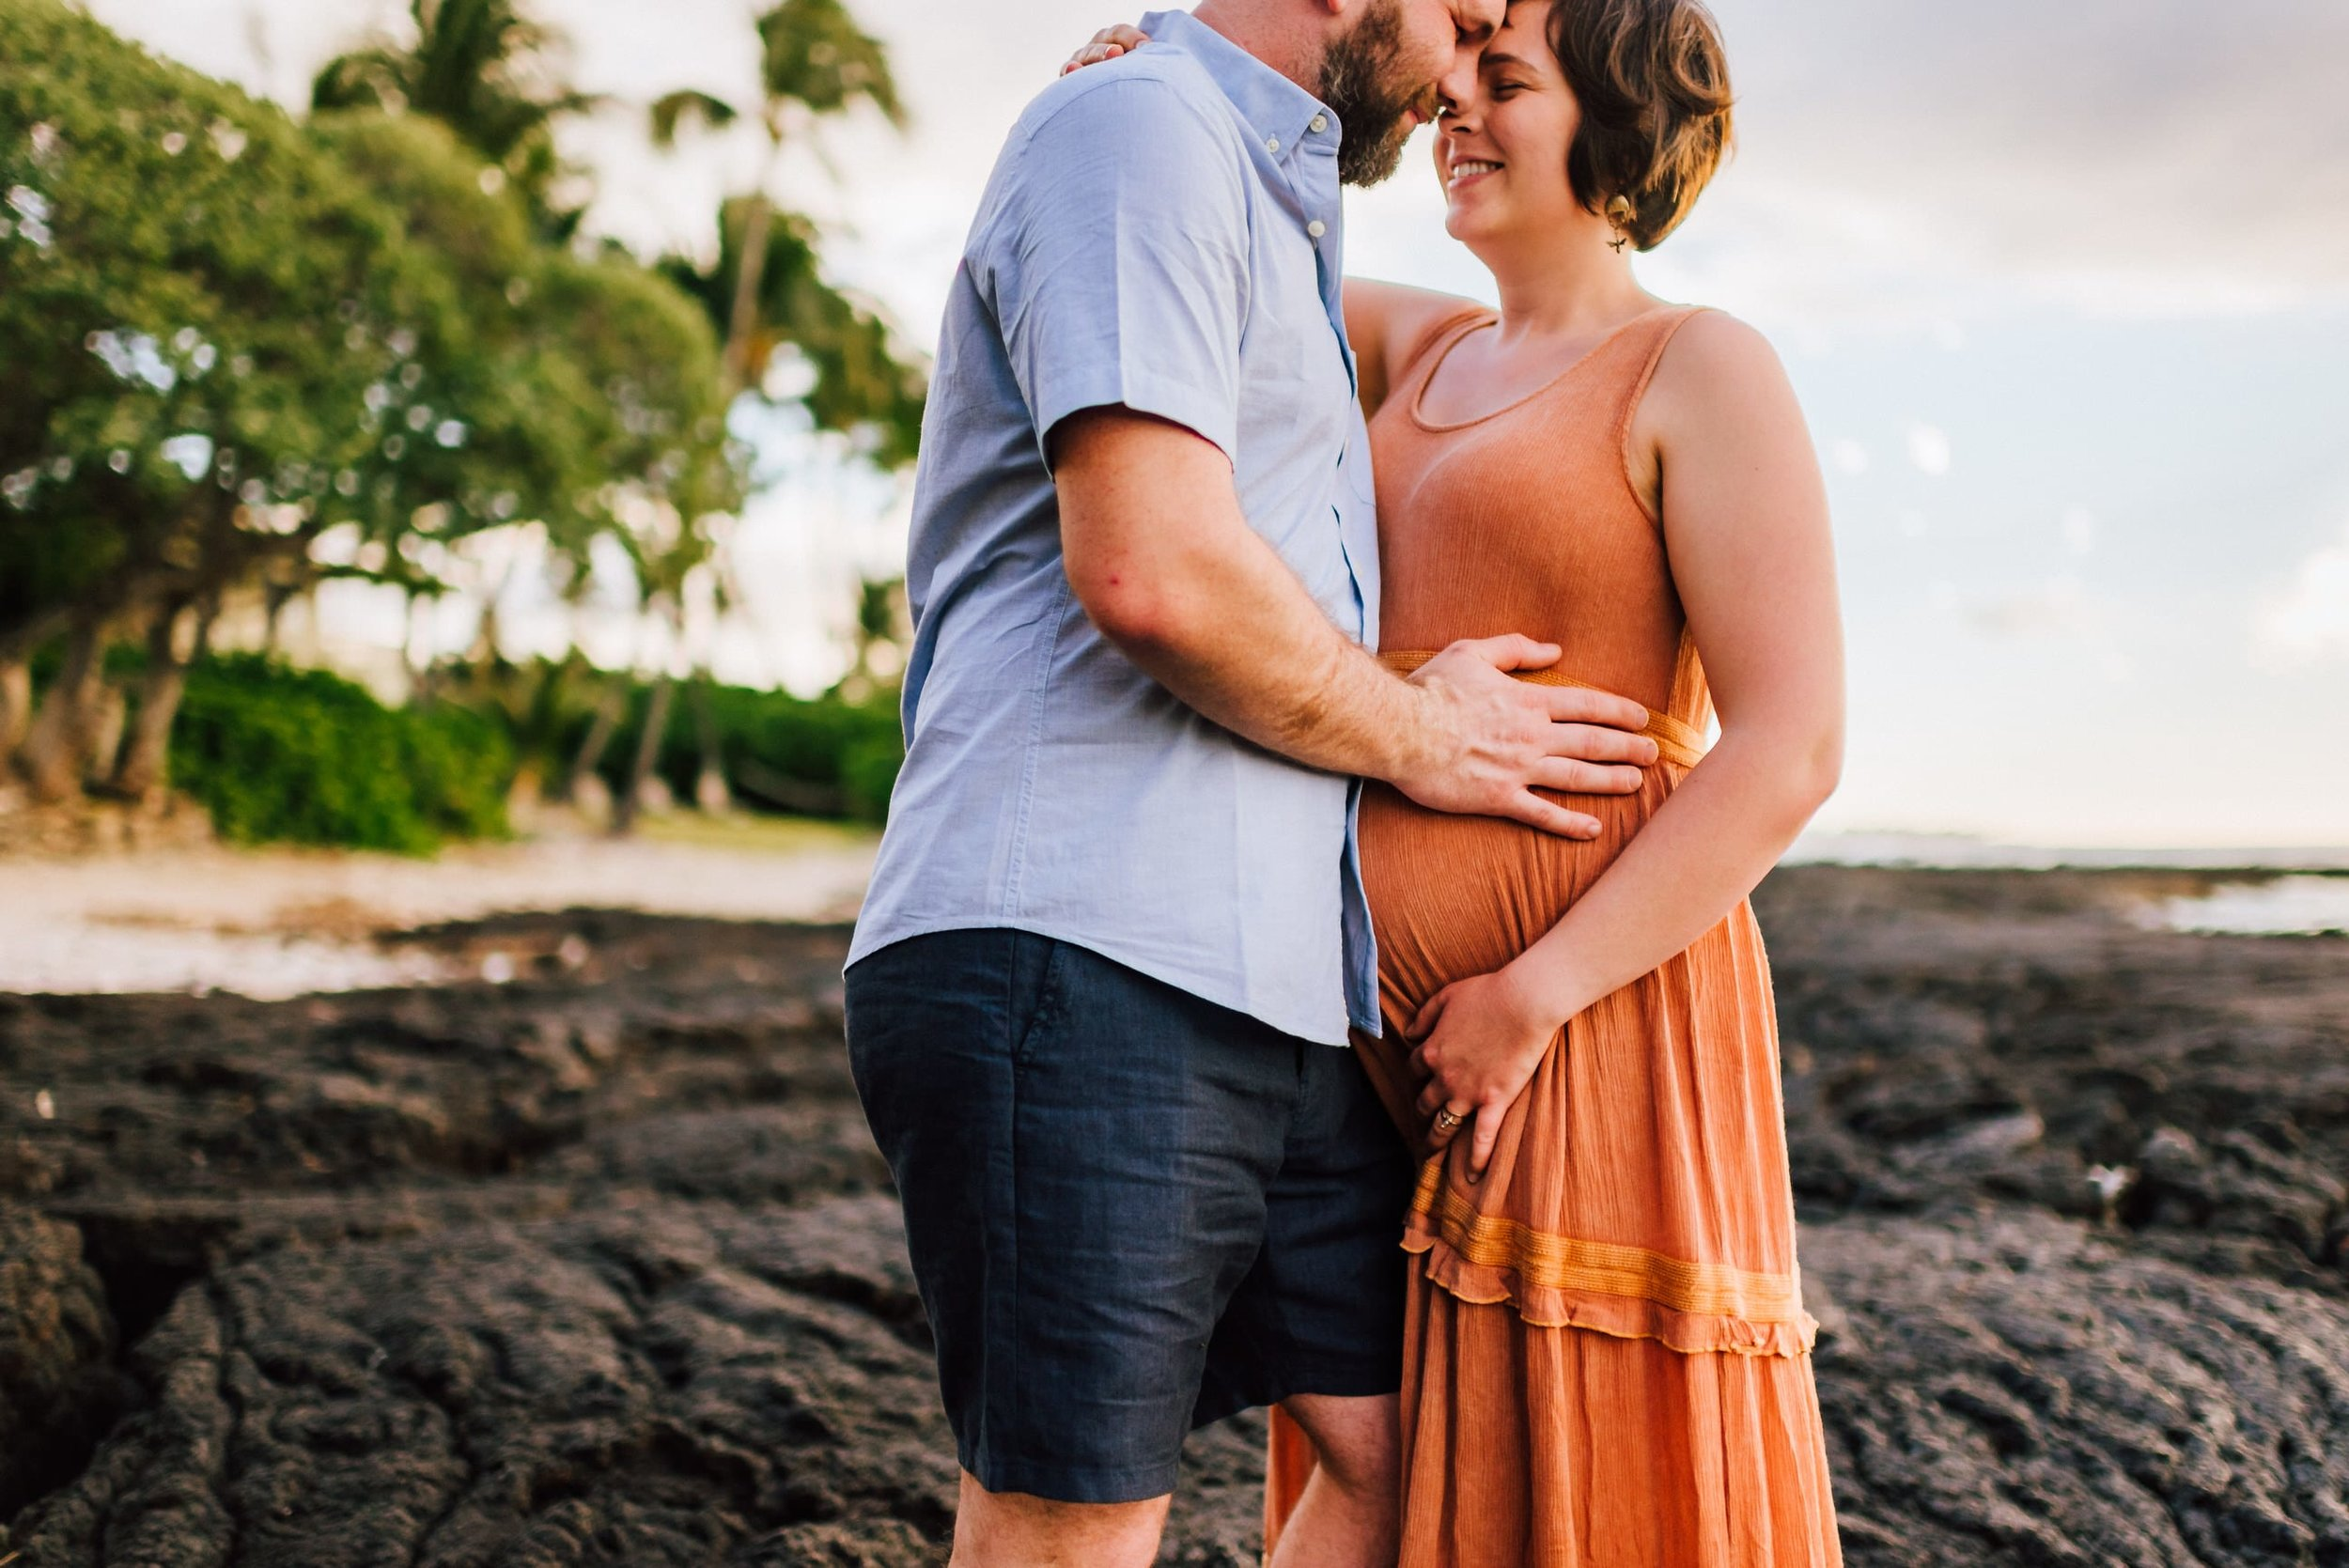 Big-Island-Photographer-Maternity-Babymoon-Hawaii-8.jpg